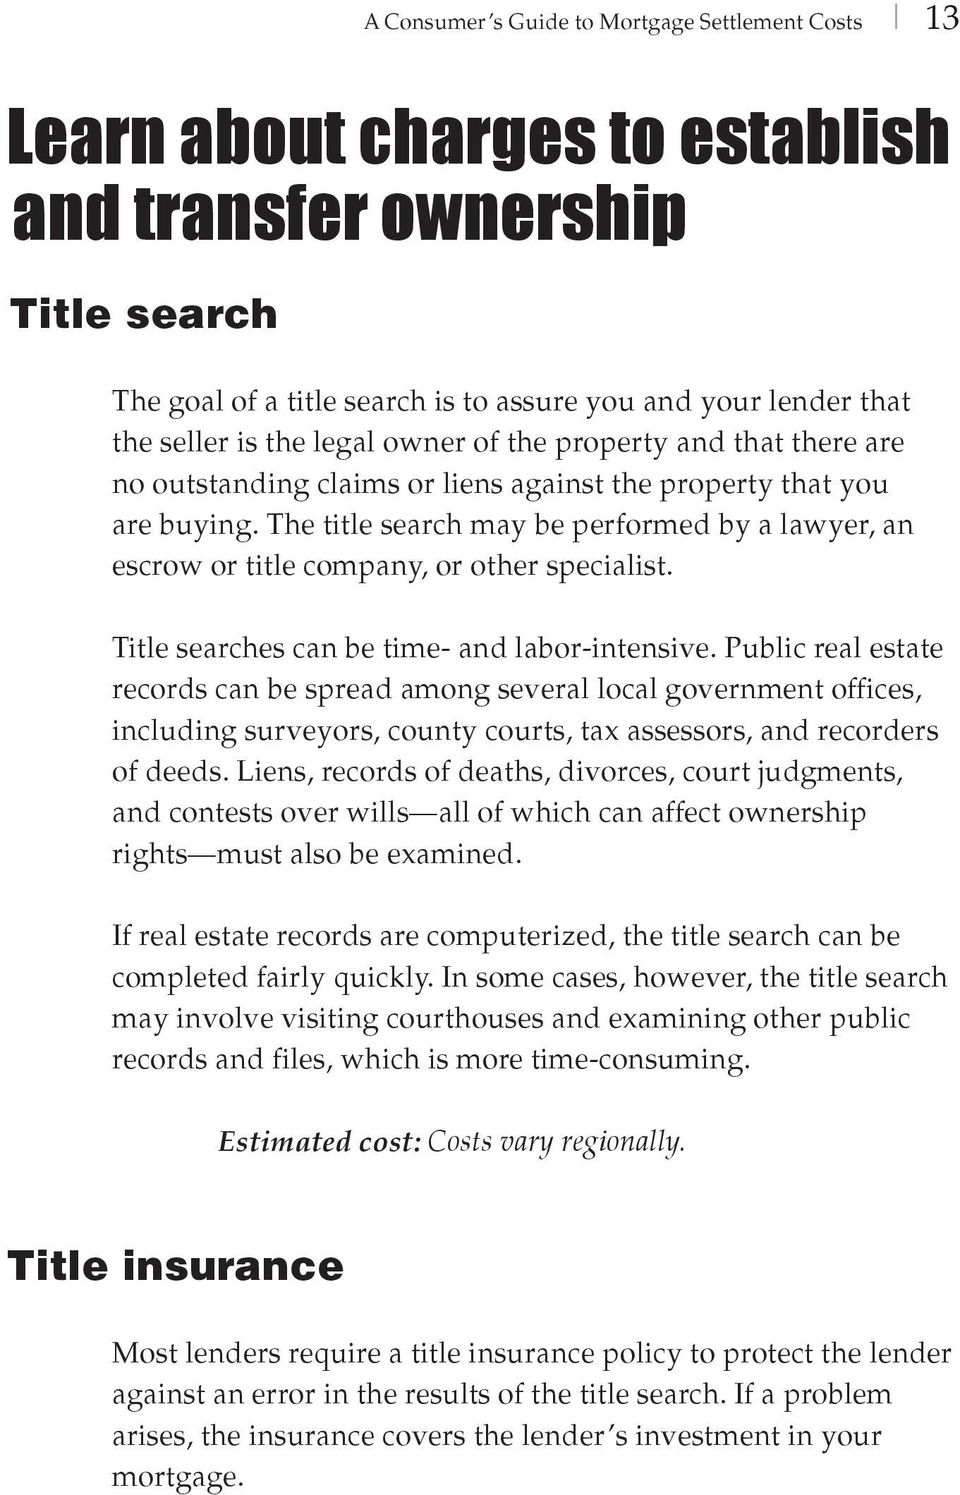 The title search may be performed by a lawyer, an escrow or title company, or other specialist. Title searches can be time- and labor-intensive.